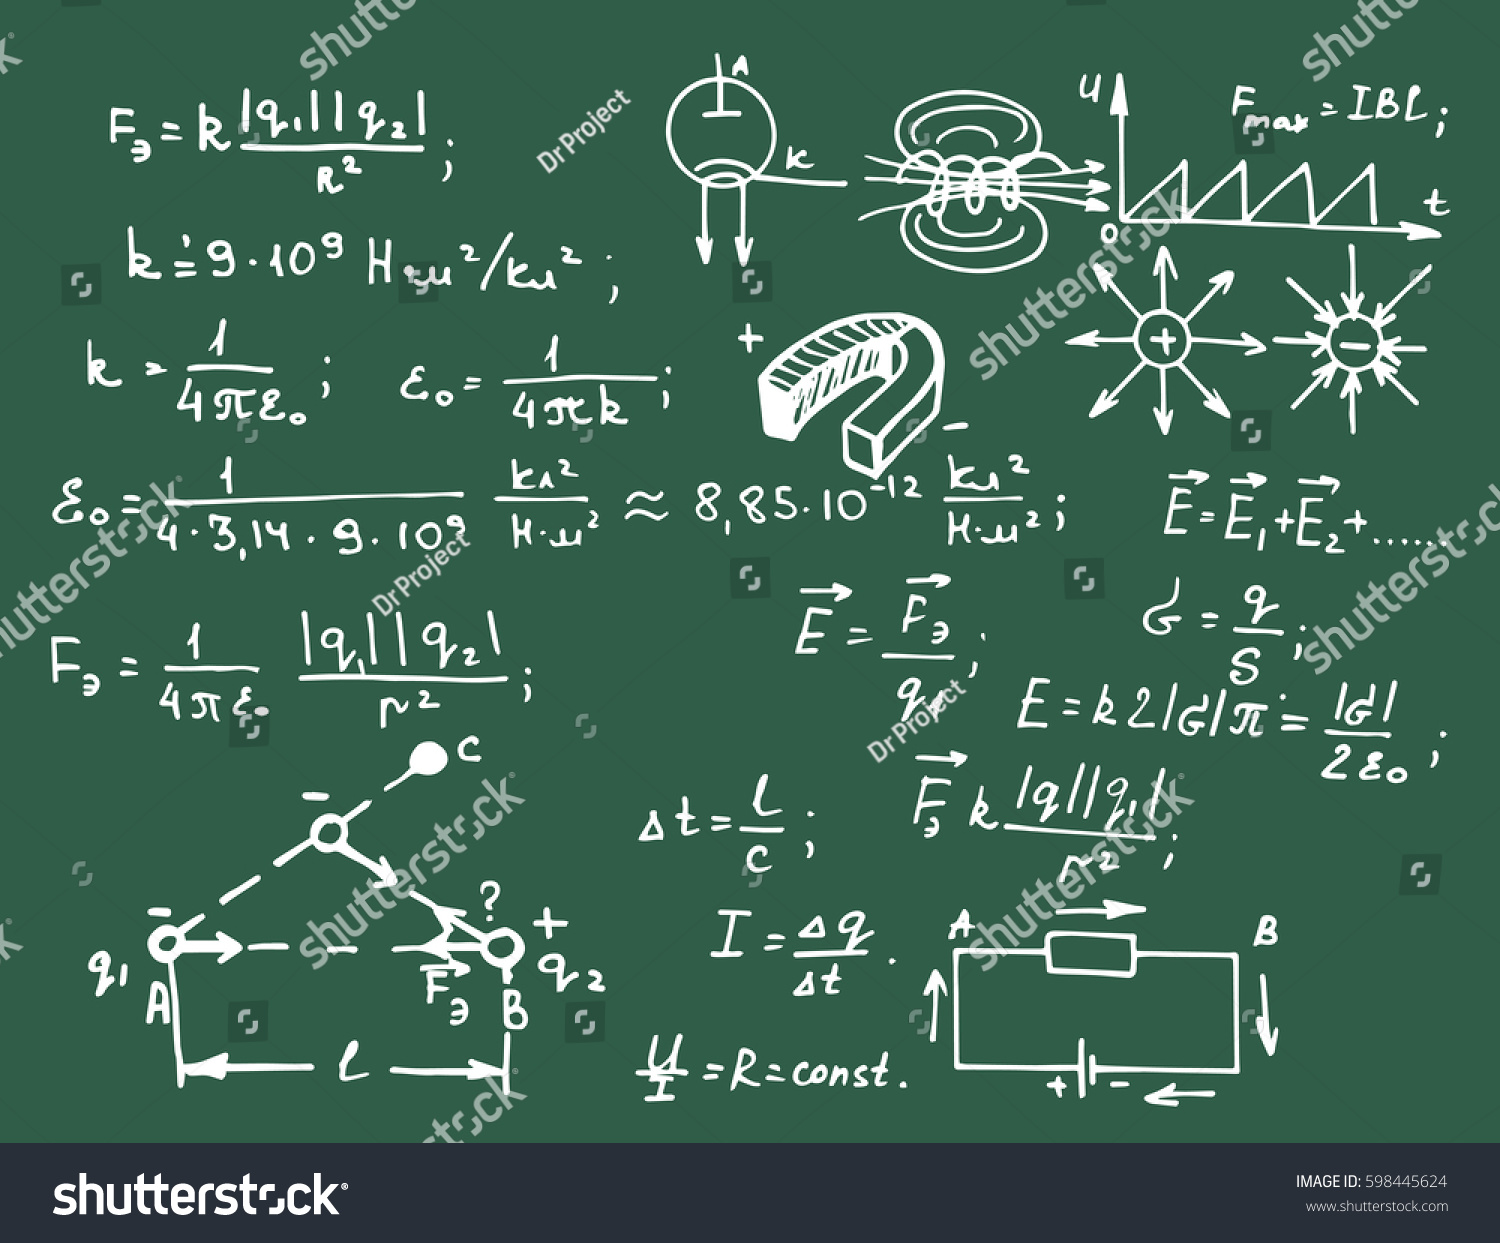 Electric Magnetic Law Theory Physics Mathematical Stock Vector Circuit Diagram Notation On Electronic Symbols And Formula Equation Physical Equations Blackboard Education